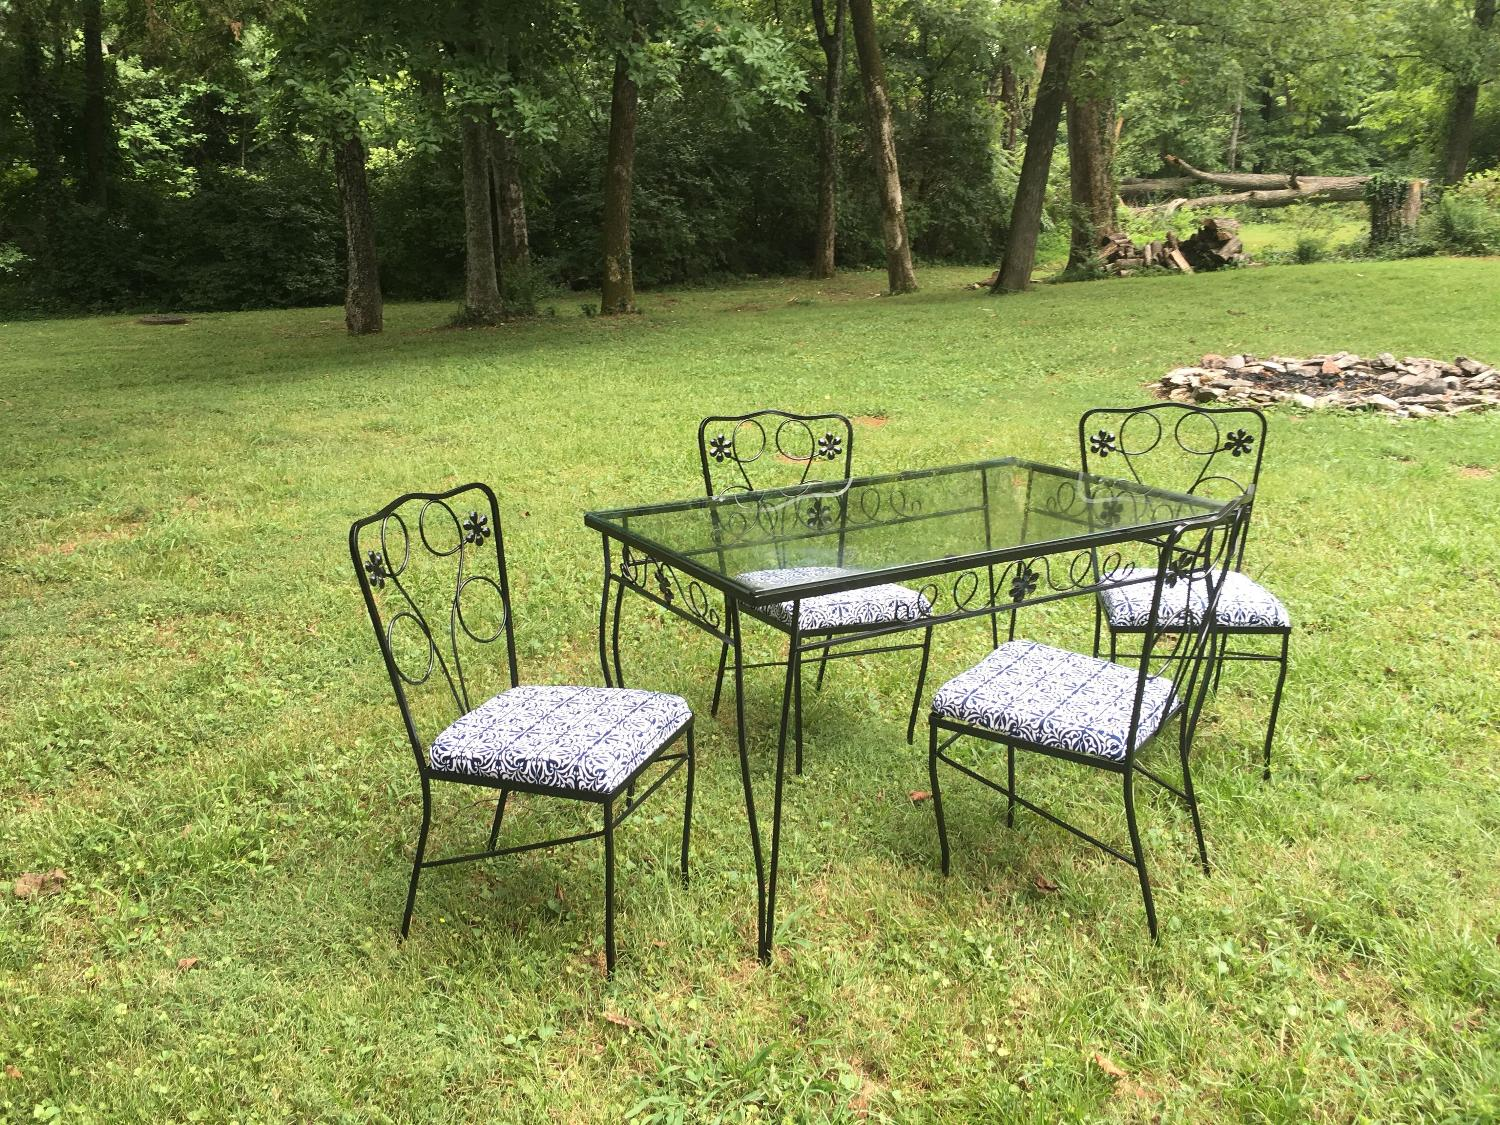 Best Wrought Iron Patio Table For Sale In Nashville Tennessee For 2020